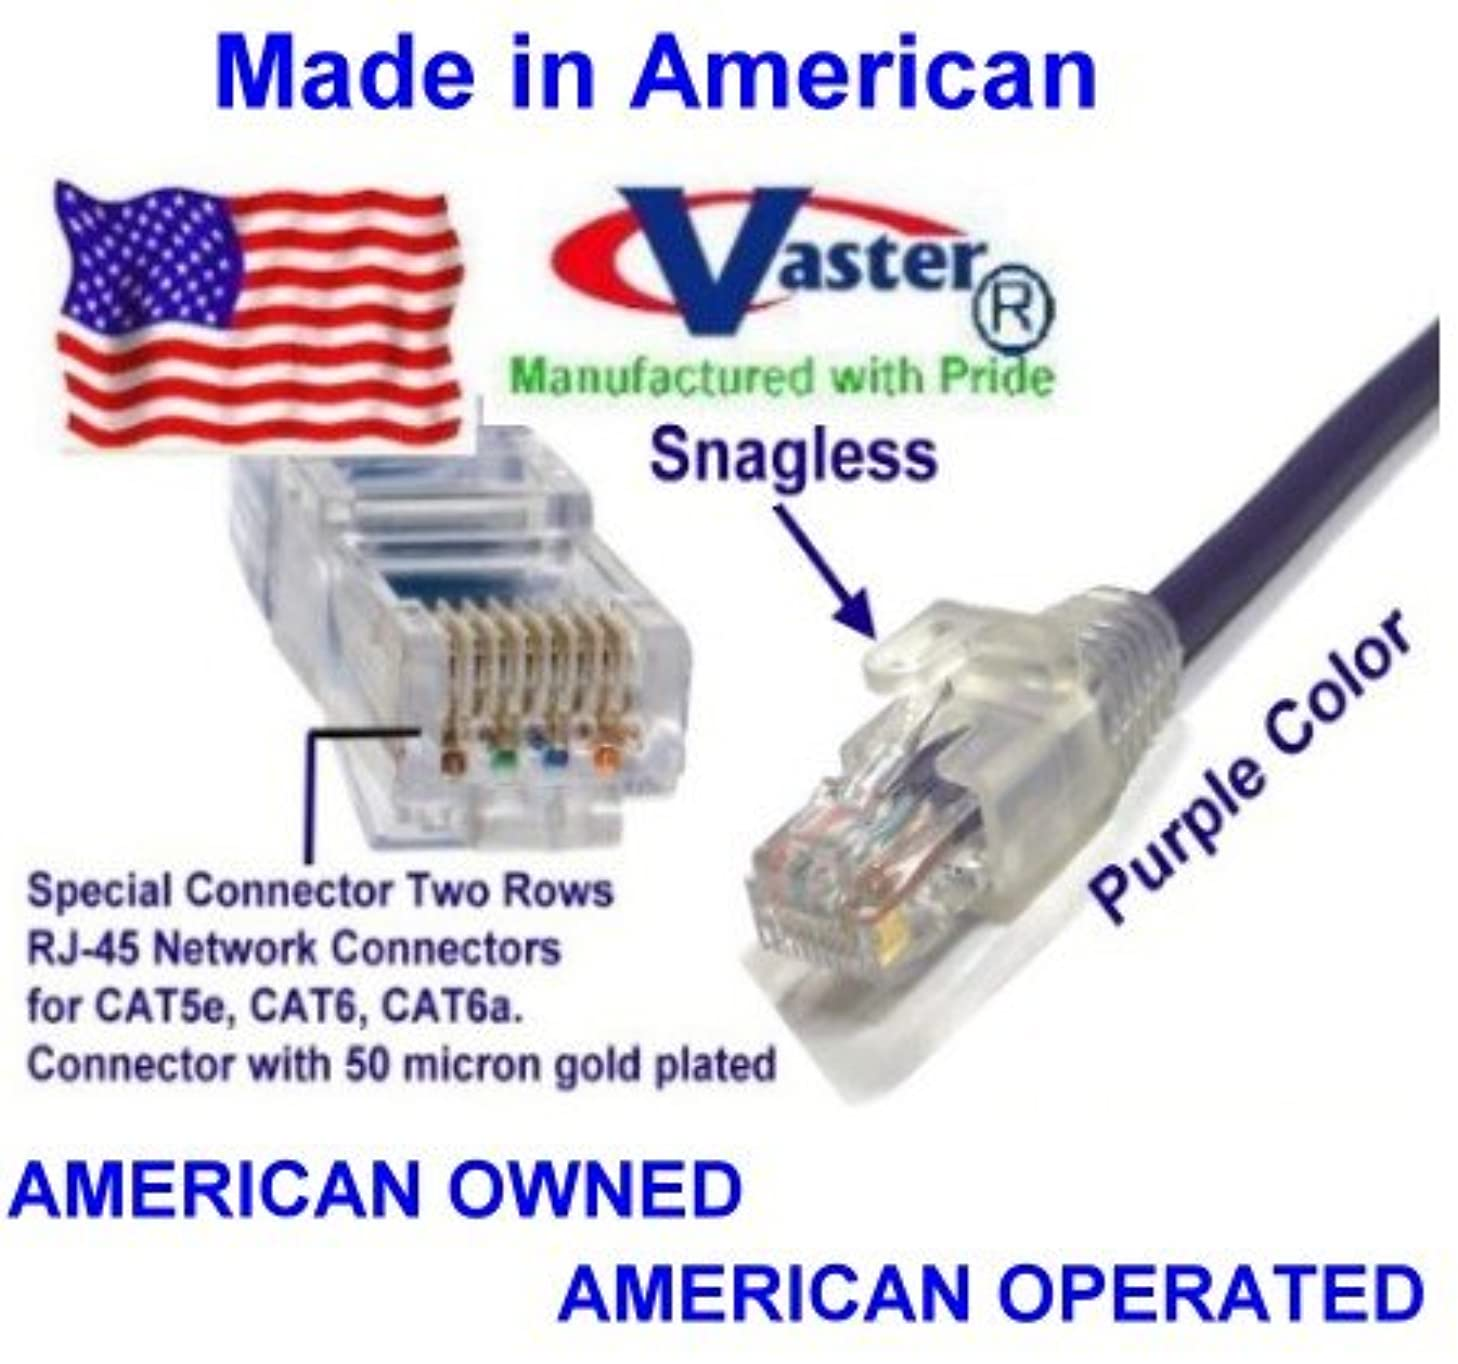 SuperEcable - USA-0675 - 11 Ft UTP Cat5e - Made in USA - PURPLE – UL 24Awg Pure Copper – Ethernet Network Patch Cable